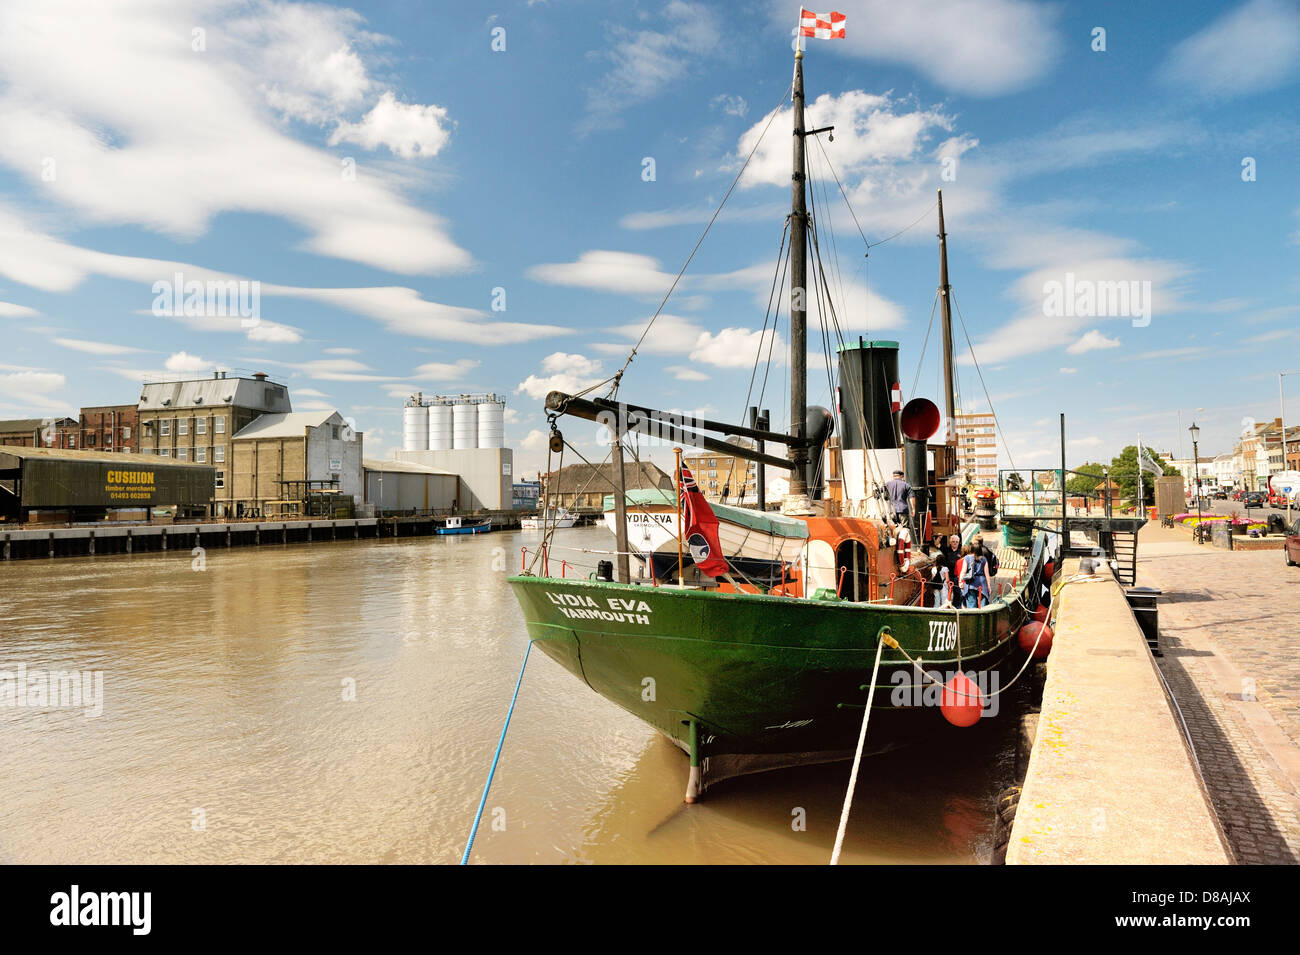 River Yare at South Quay, Great Yarmouth, England. Vintage steam drifter herring boat Lydia Eva built 1930. Waveney - Stock Image